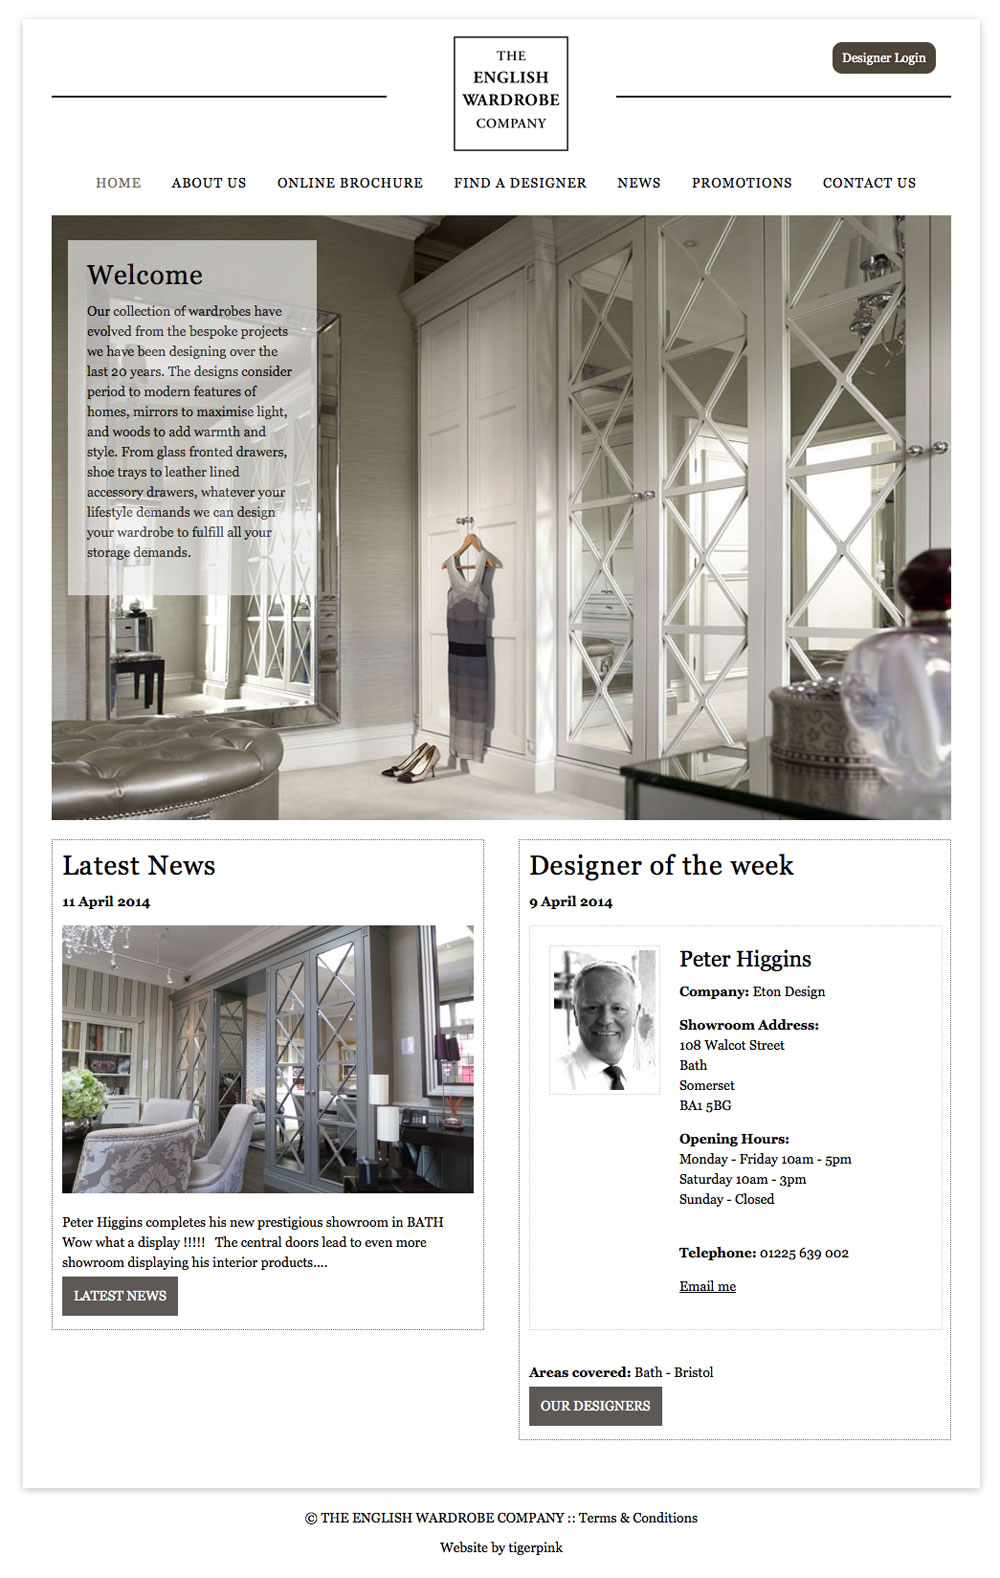 Tigerpink website design - The English Wardrobe Company